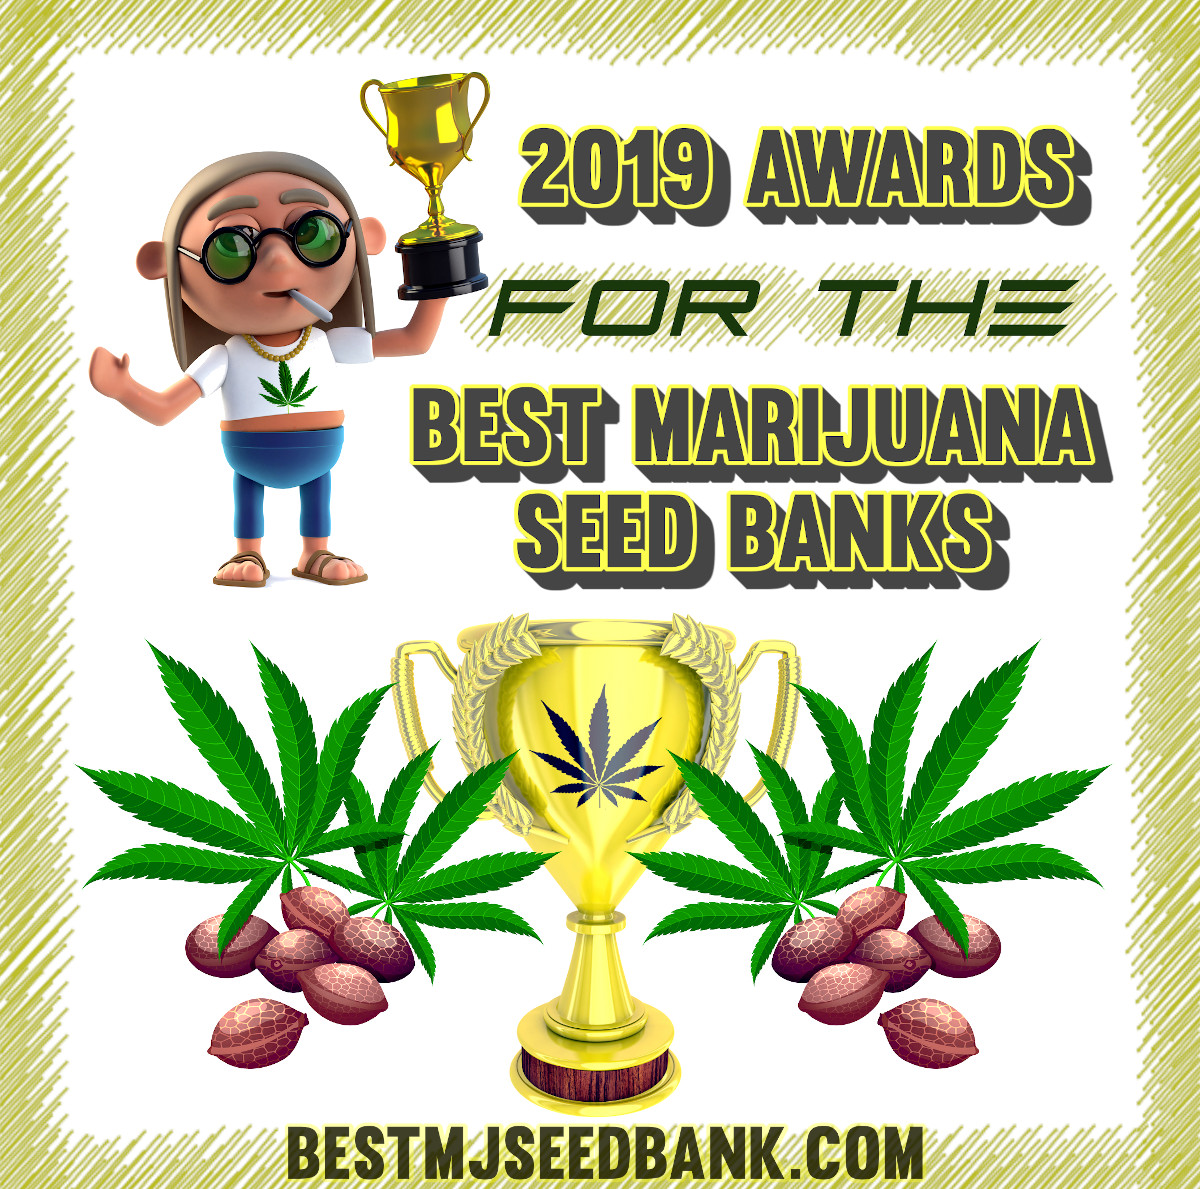 2019-2021 Awards for the Best Marijuana Seed Bank